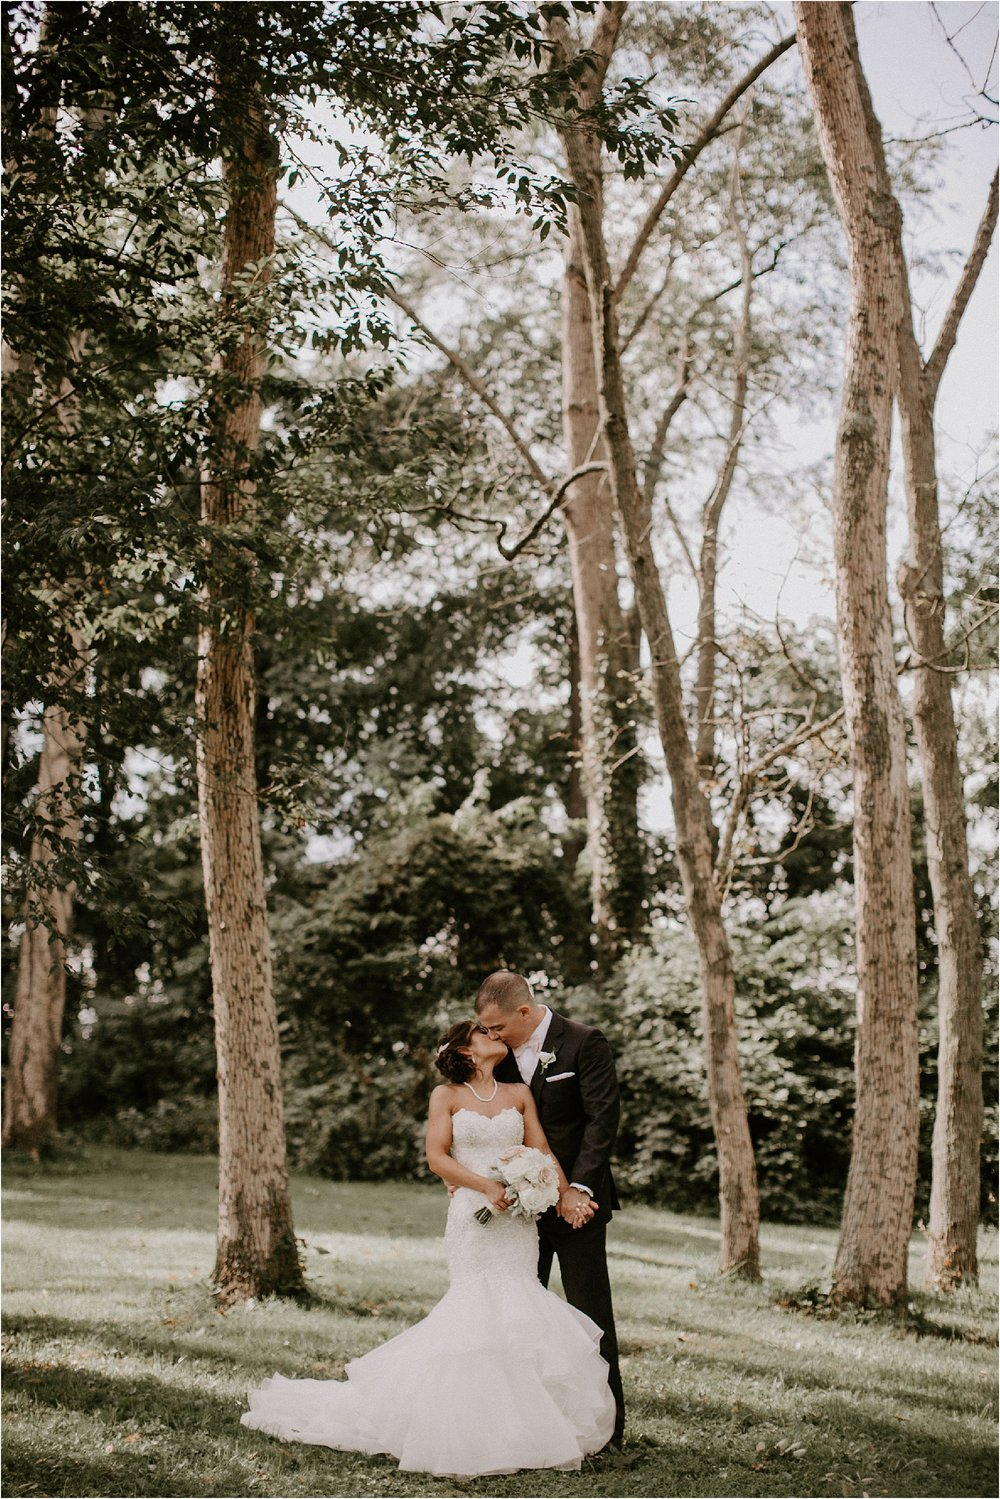 Sarah_Brookhart_Baltimore_Wedding_Photographer_0055.jpg